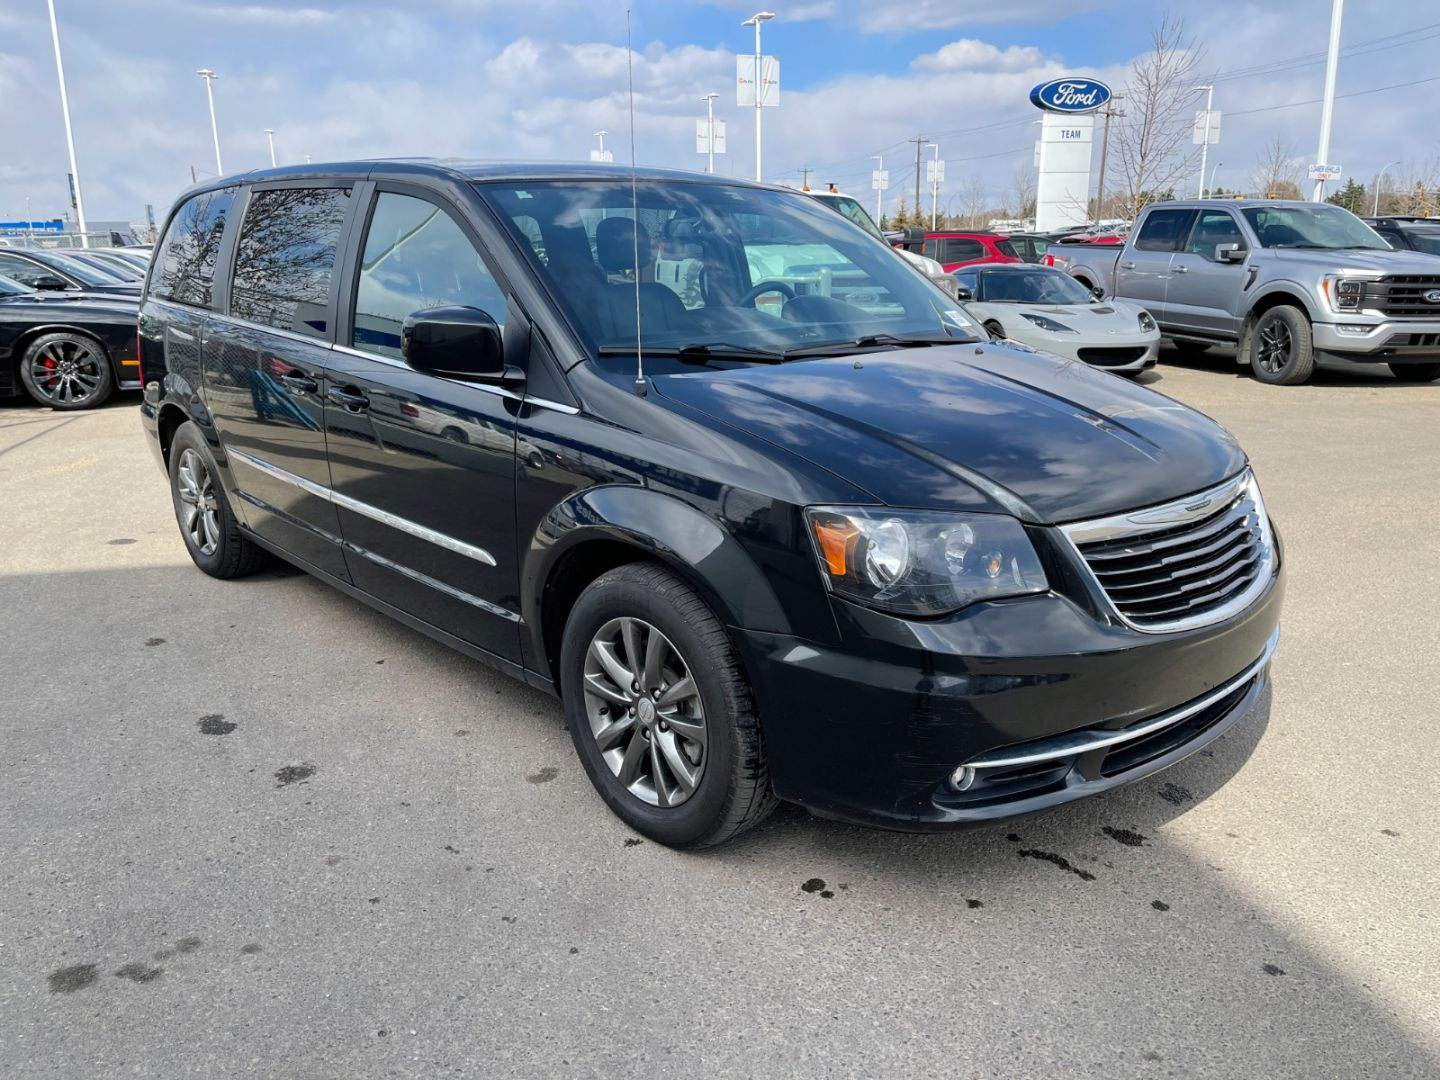 2014 Chrysler Town & Country S for sale in Edmonton, Alberta